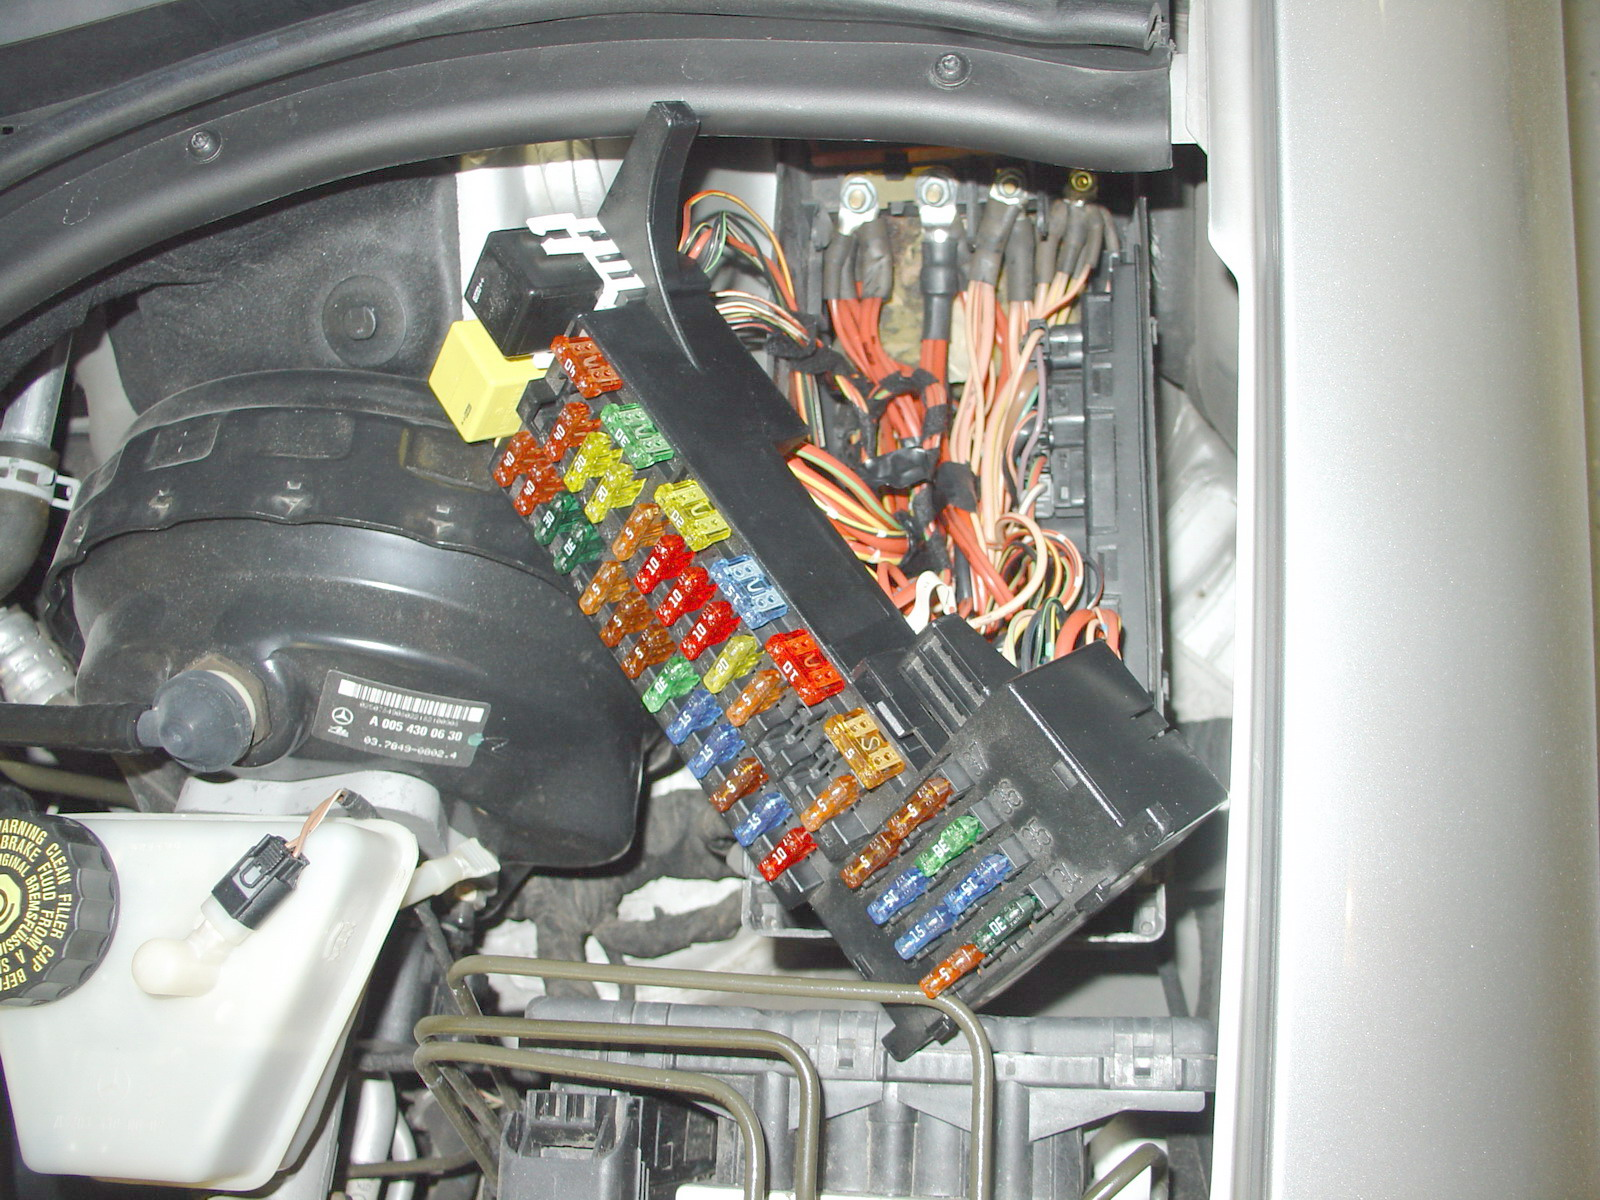 Mercedes Slk Wiring Diagram Page 2 And Schematics Slk230 Kompressor Fuse R170 Smart Diagrams U2022 Rh Emgsolutions Co 230